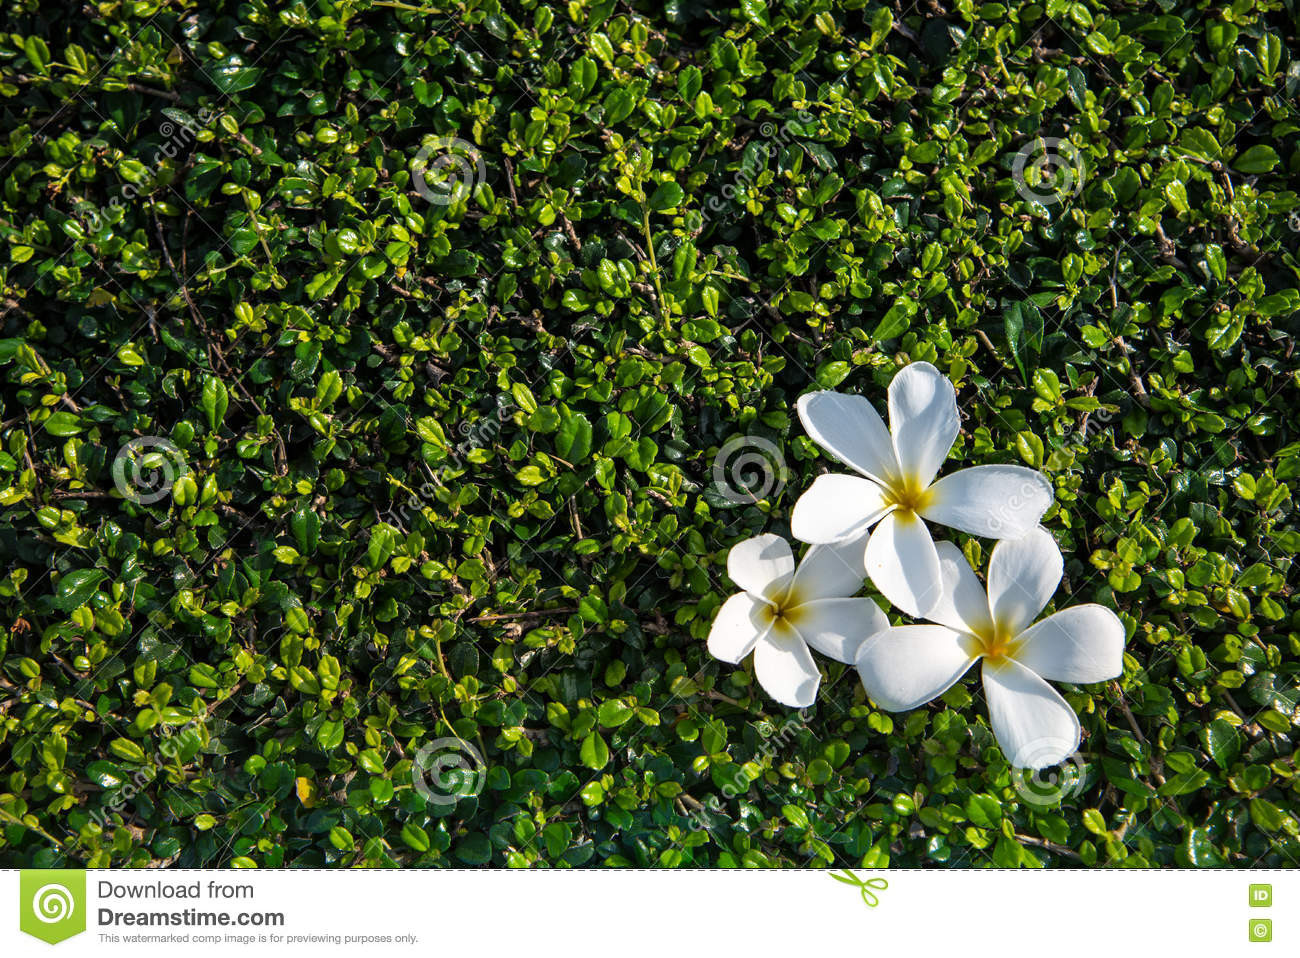 White Flower On A Concrete Floor With A Shrub Wall With The Hard Sun